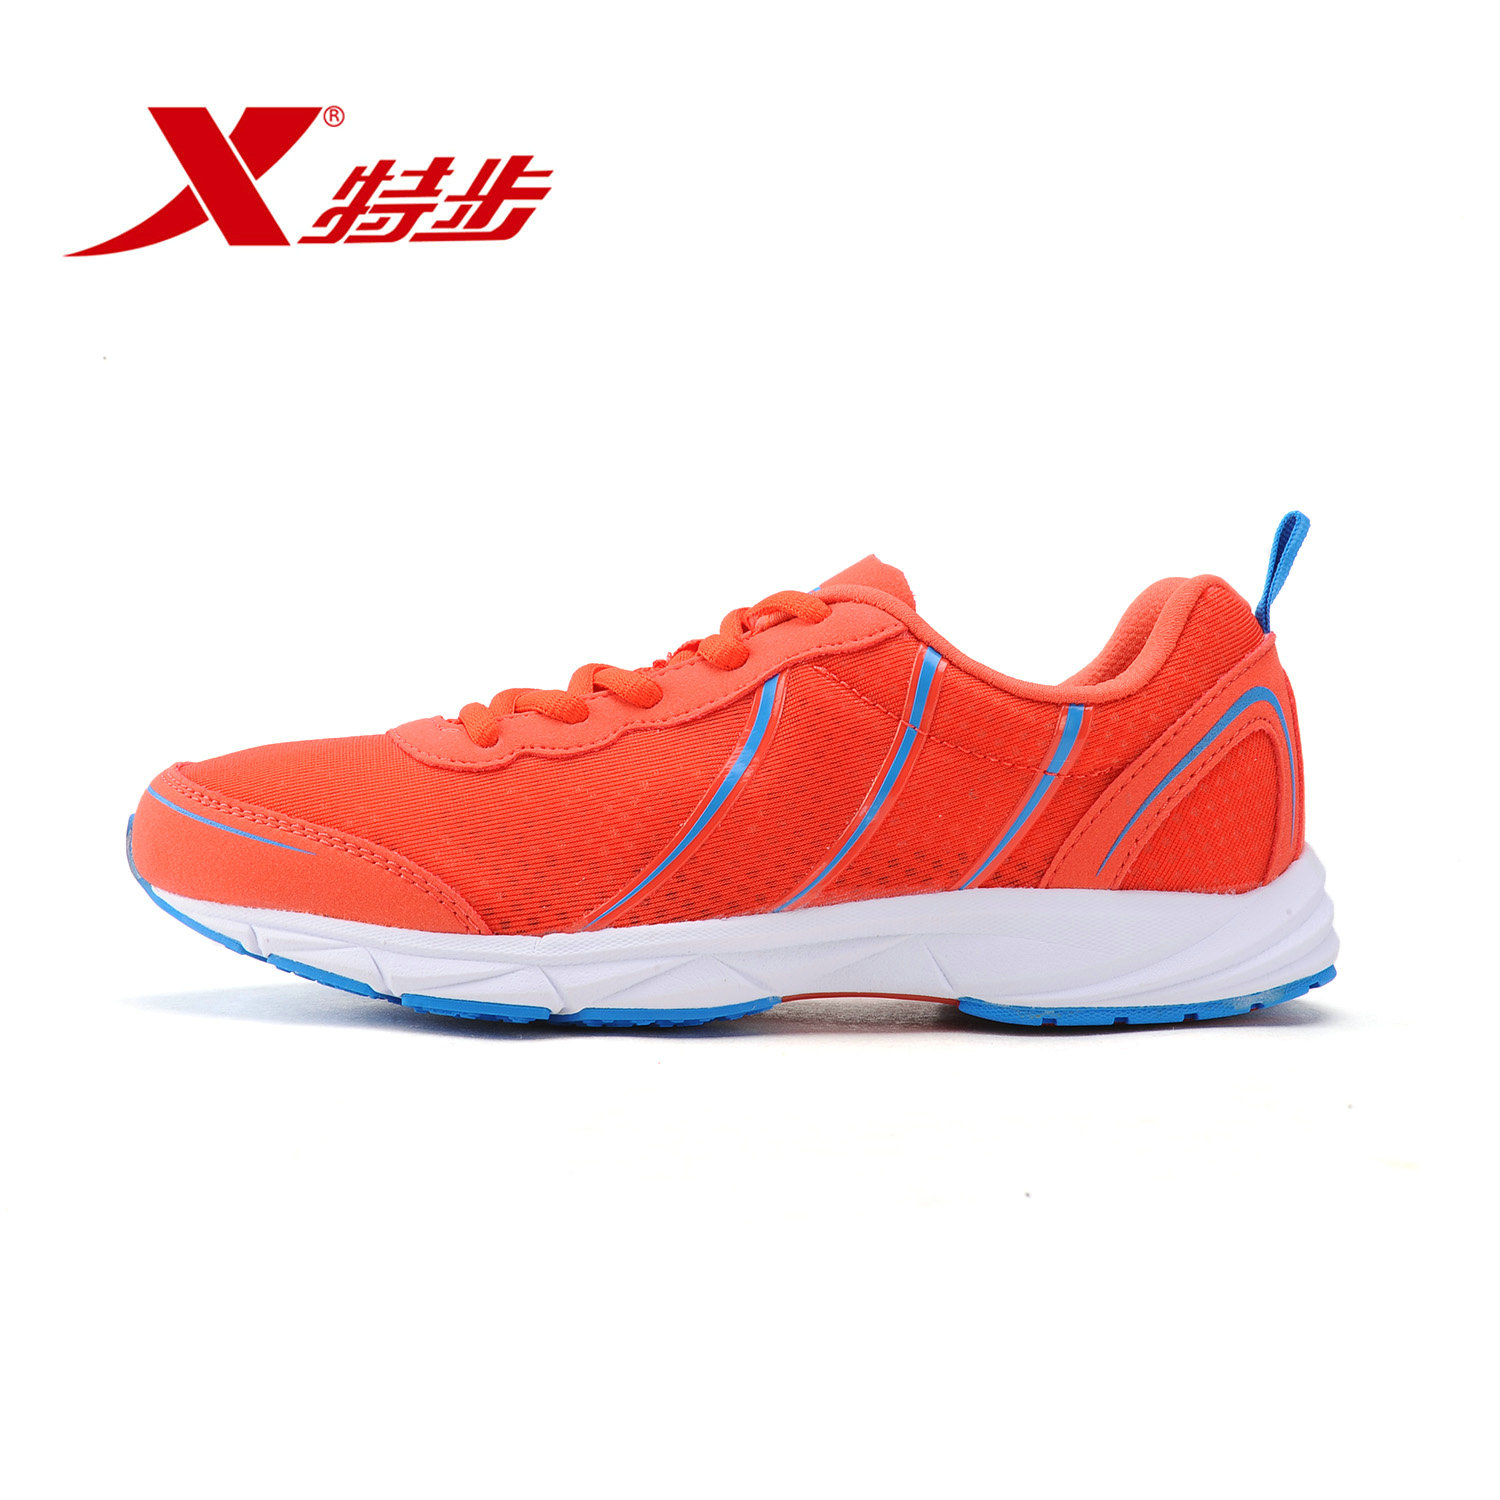 Xtep sports shoes lightweight and comfortable running shoes women shoes 2016 new running shoes fitness shoes essential fashion